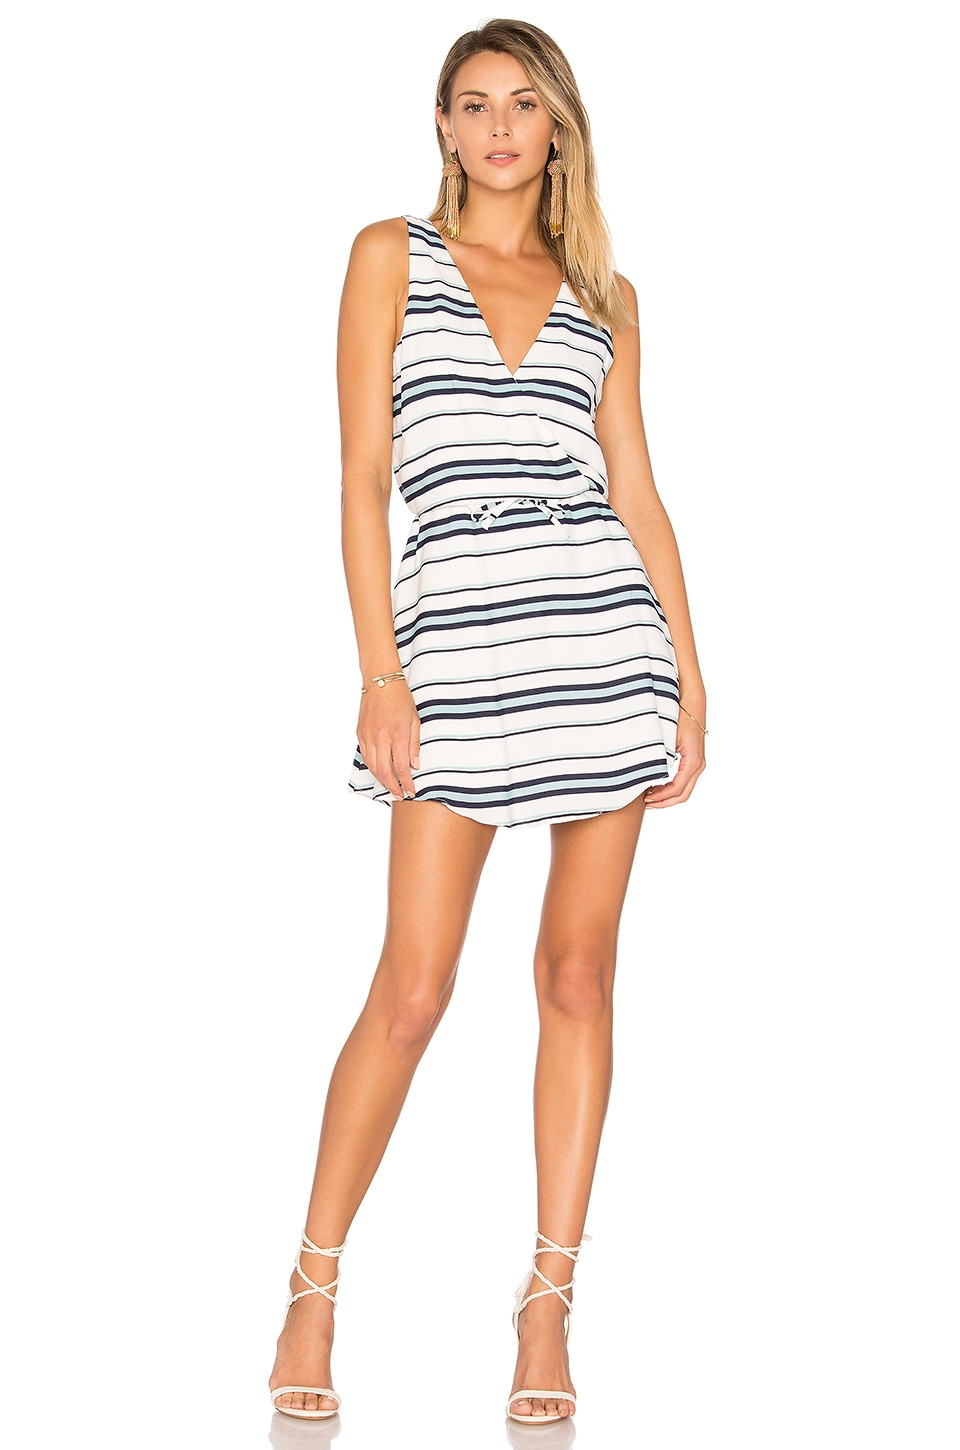 Lovers + Friends Dreamland Dress in Blue Stripe